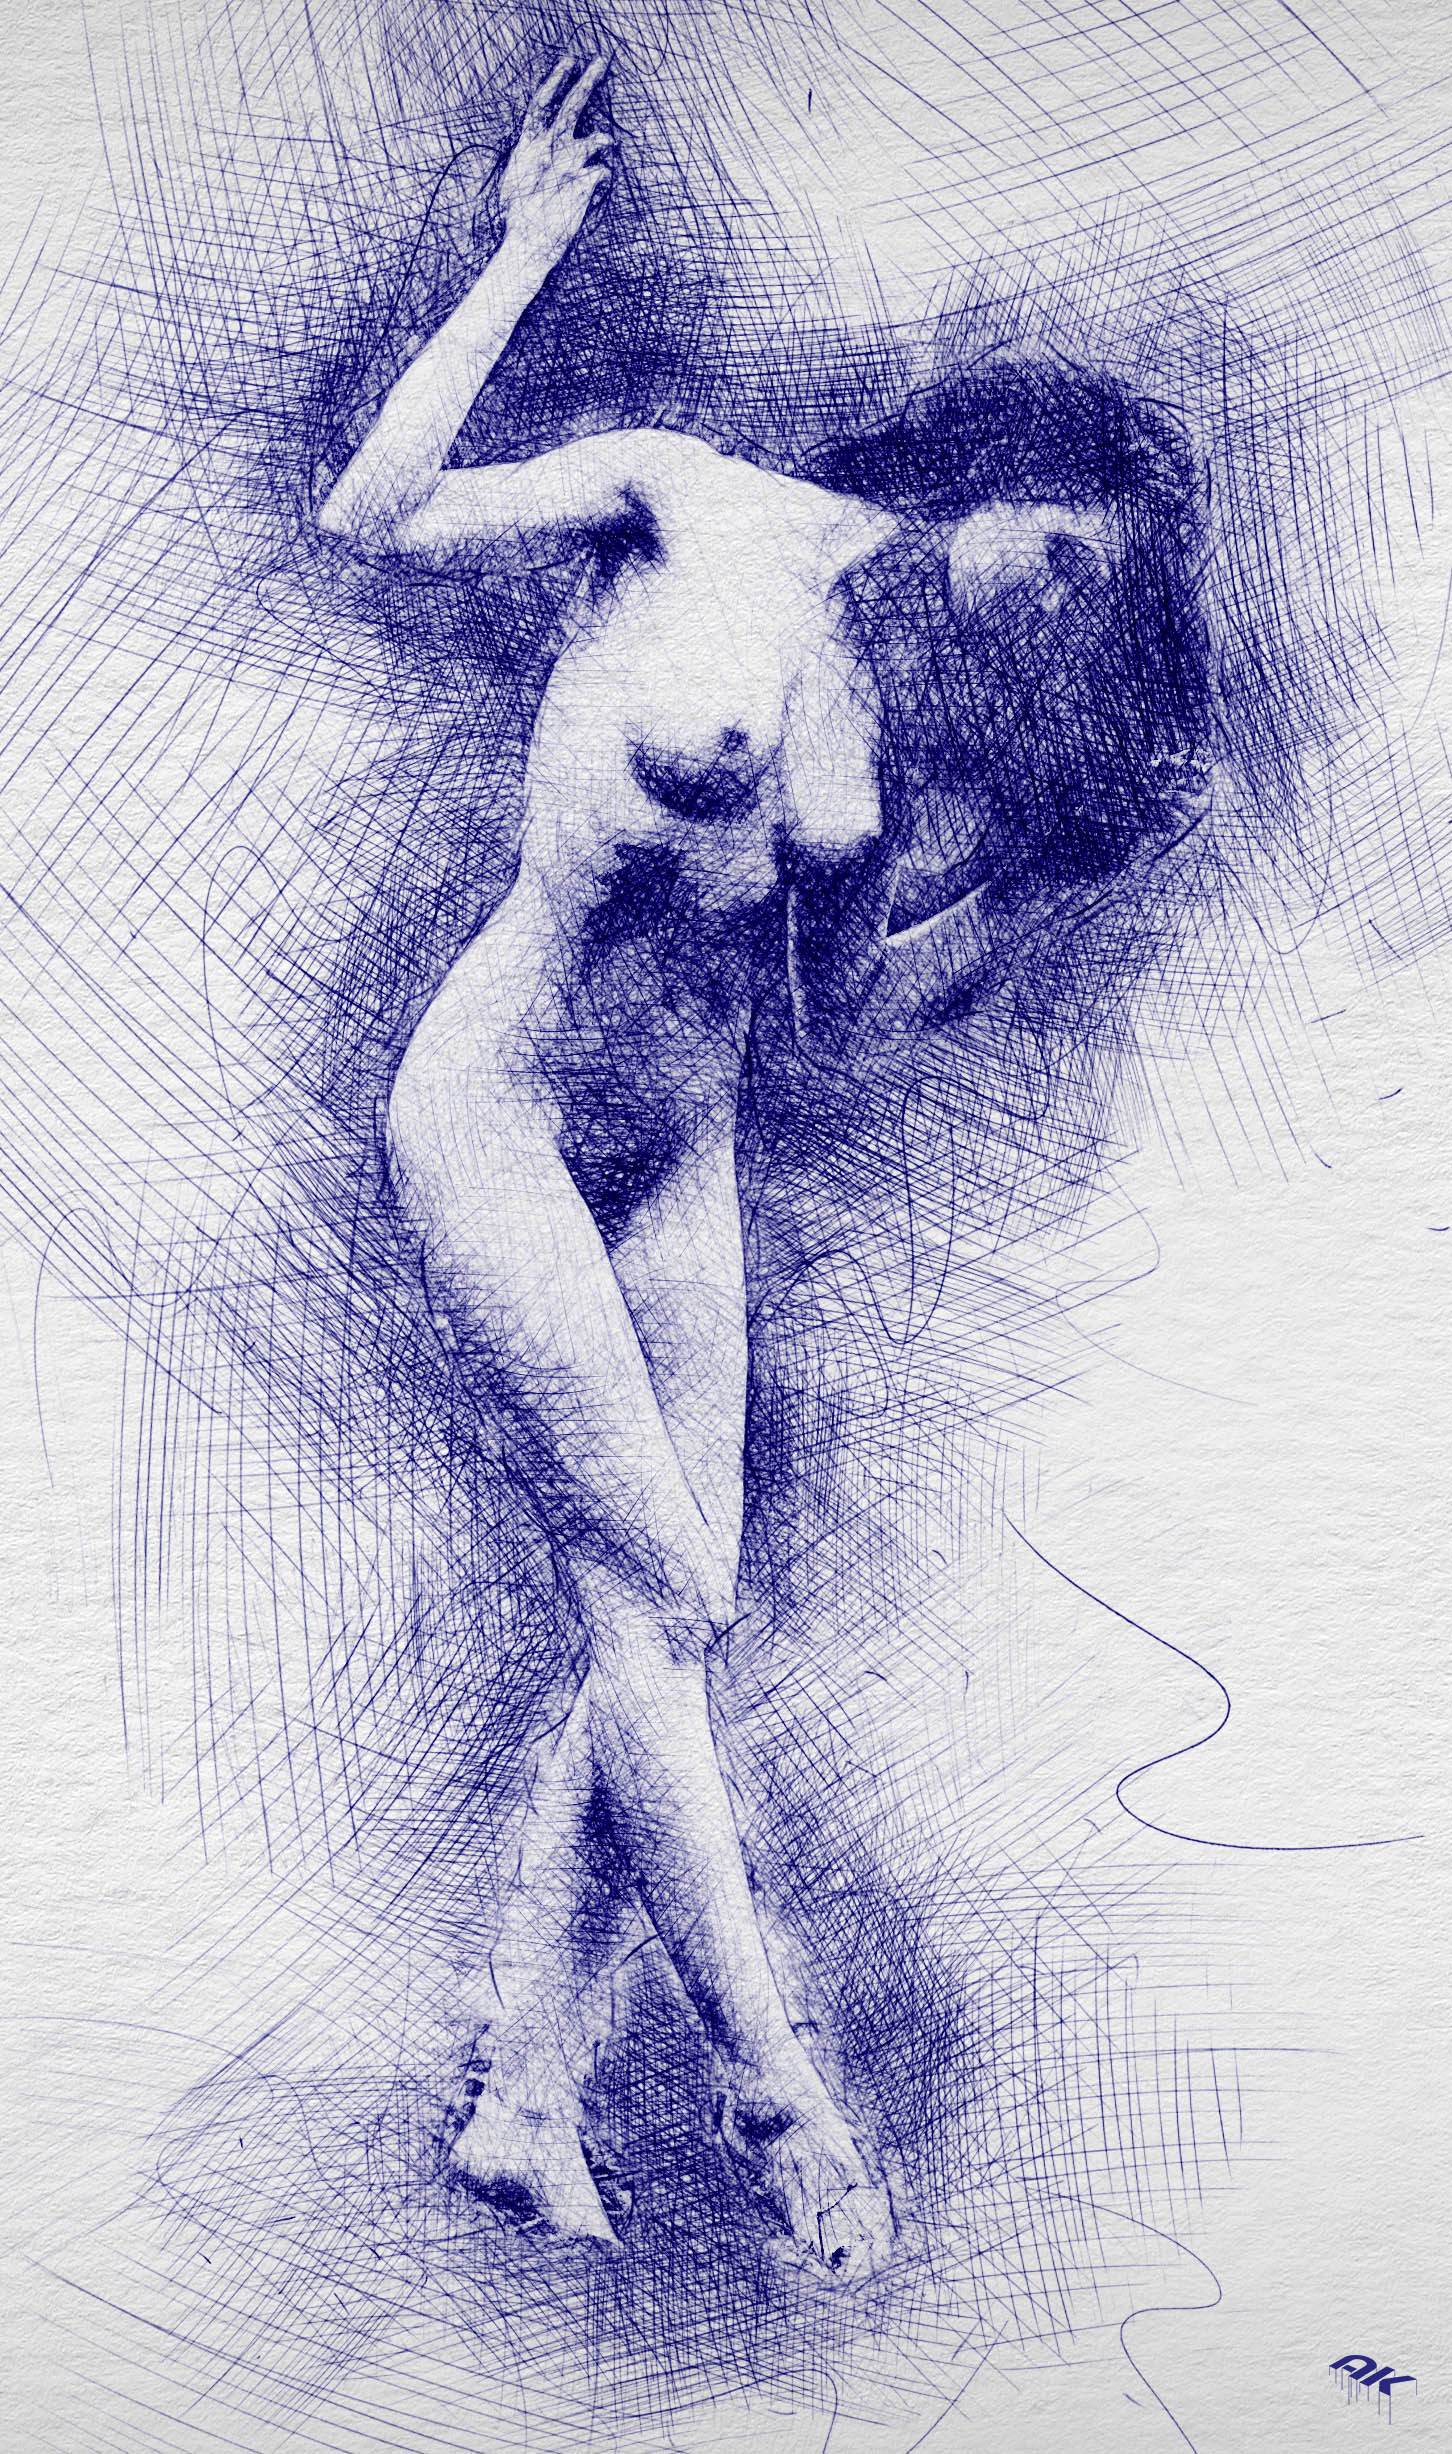 life-drawing-series-5-image-10-copyright-andrew-knutt